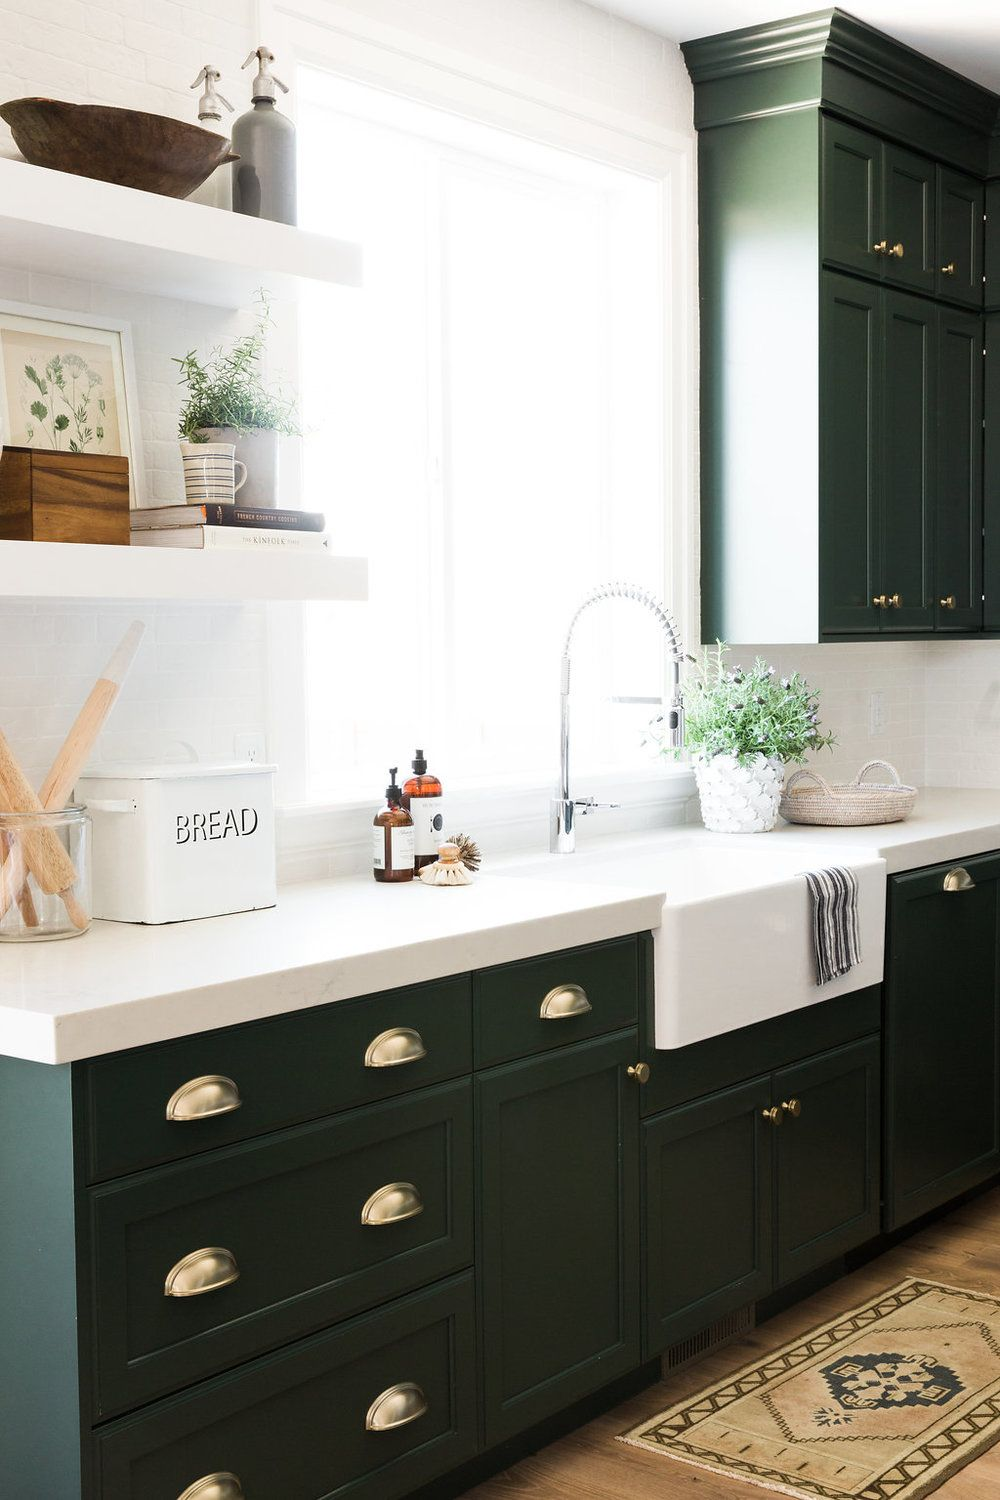 When You Only Have Space For That One Awkward Cabinet By The Sink   Open  Shelves Are Always A Good Alternative! // Studio McGee Photo By